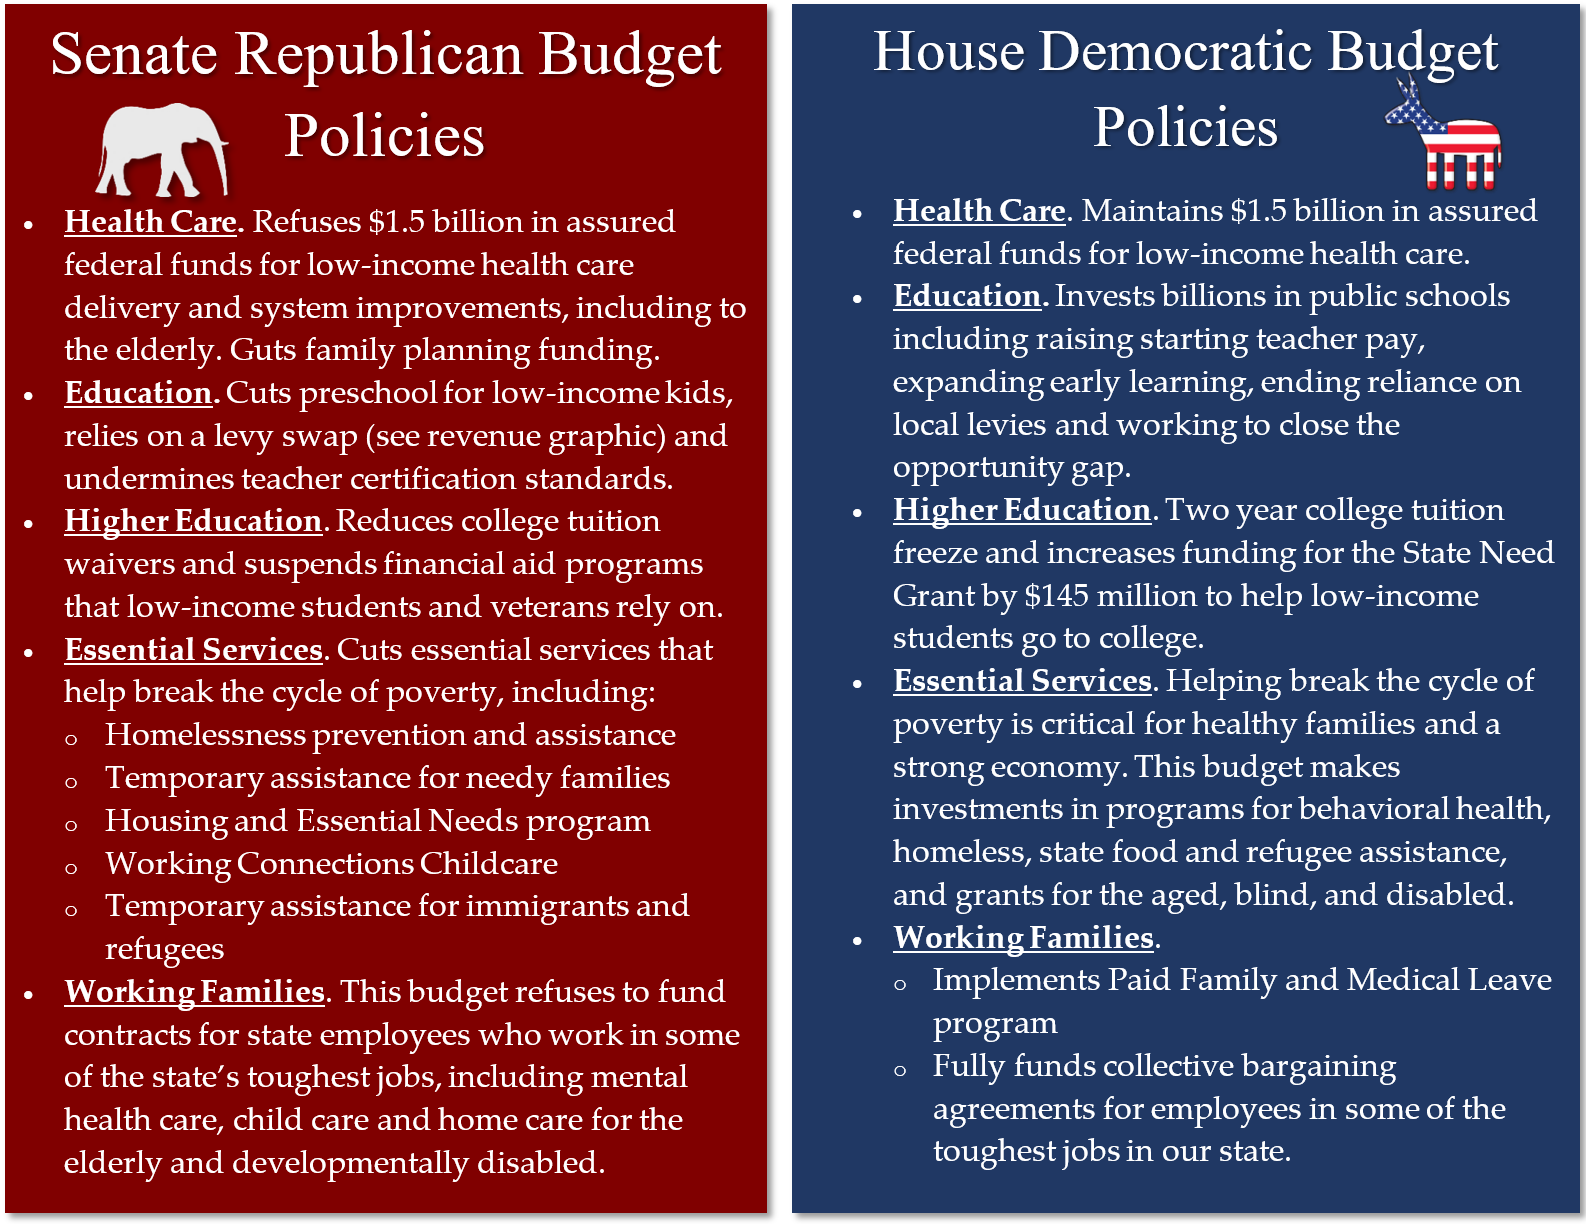 House v Senate policies